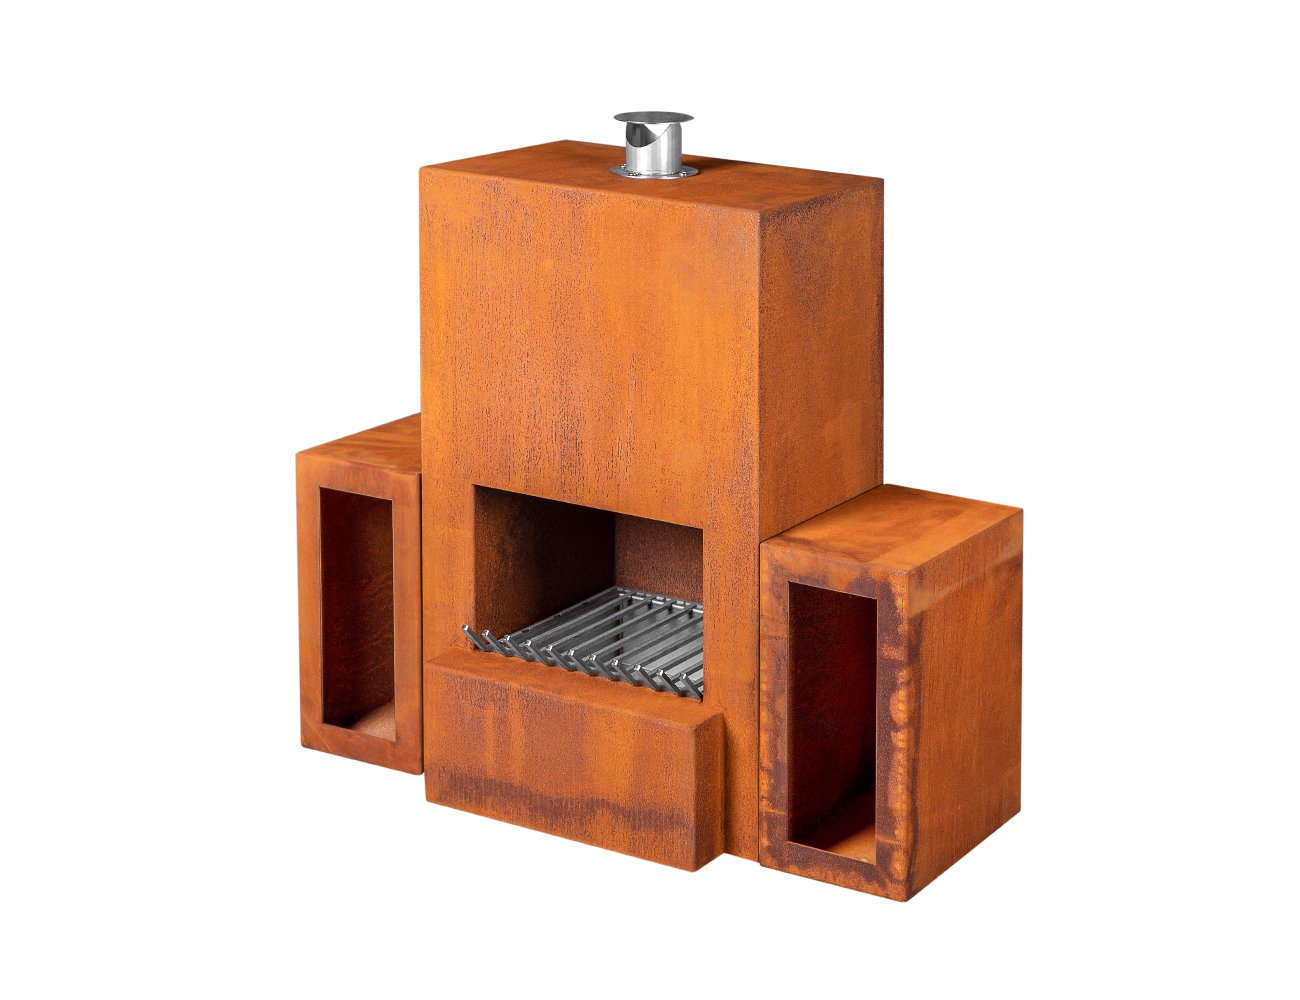 Orpheus Corten Steel Fireplace & Wood Storage Set